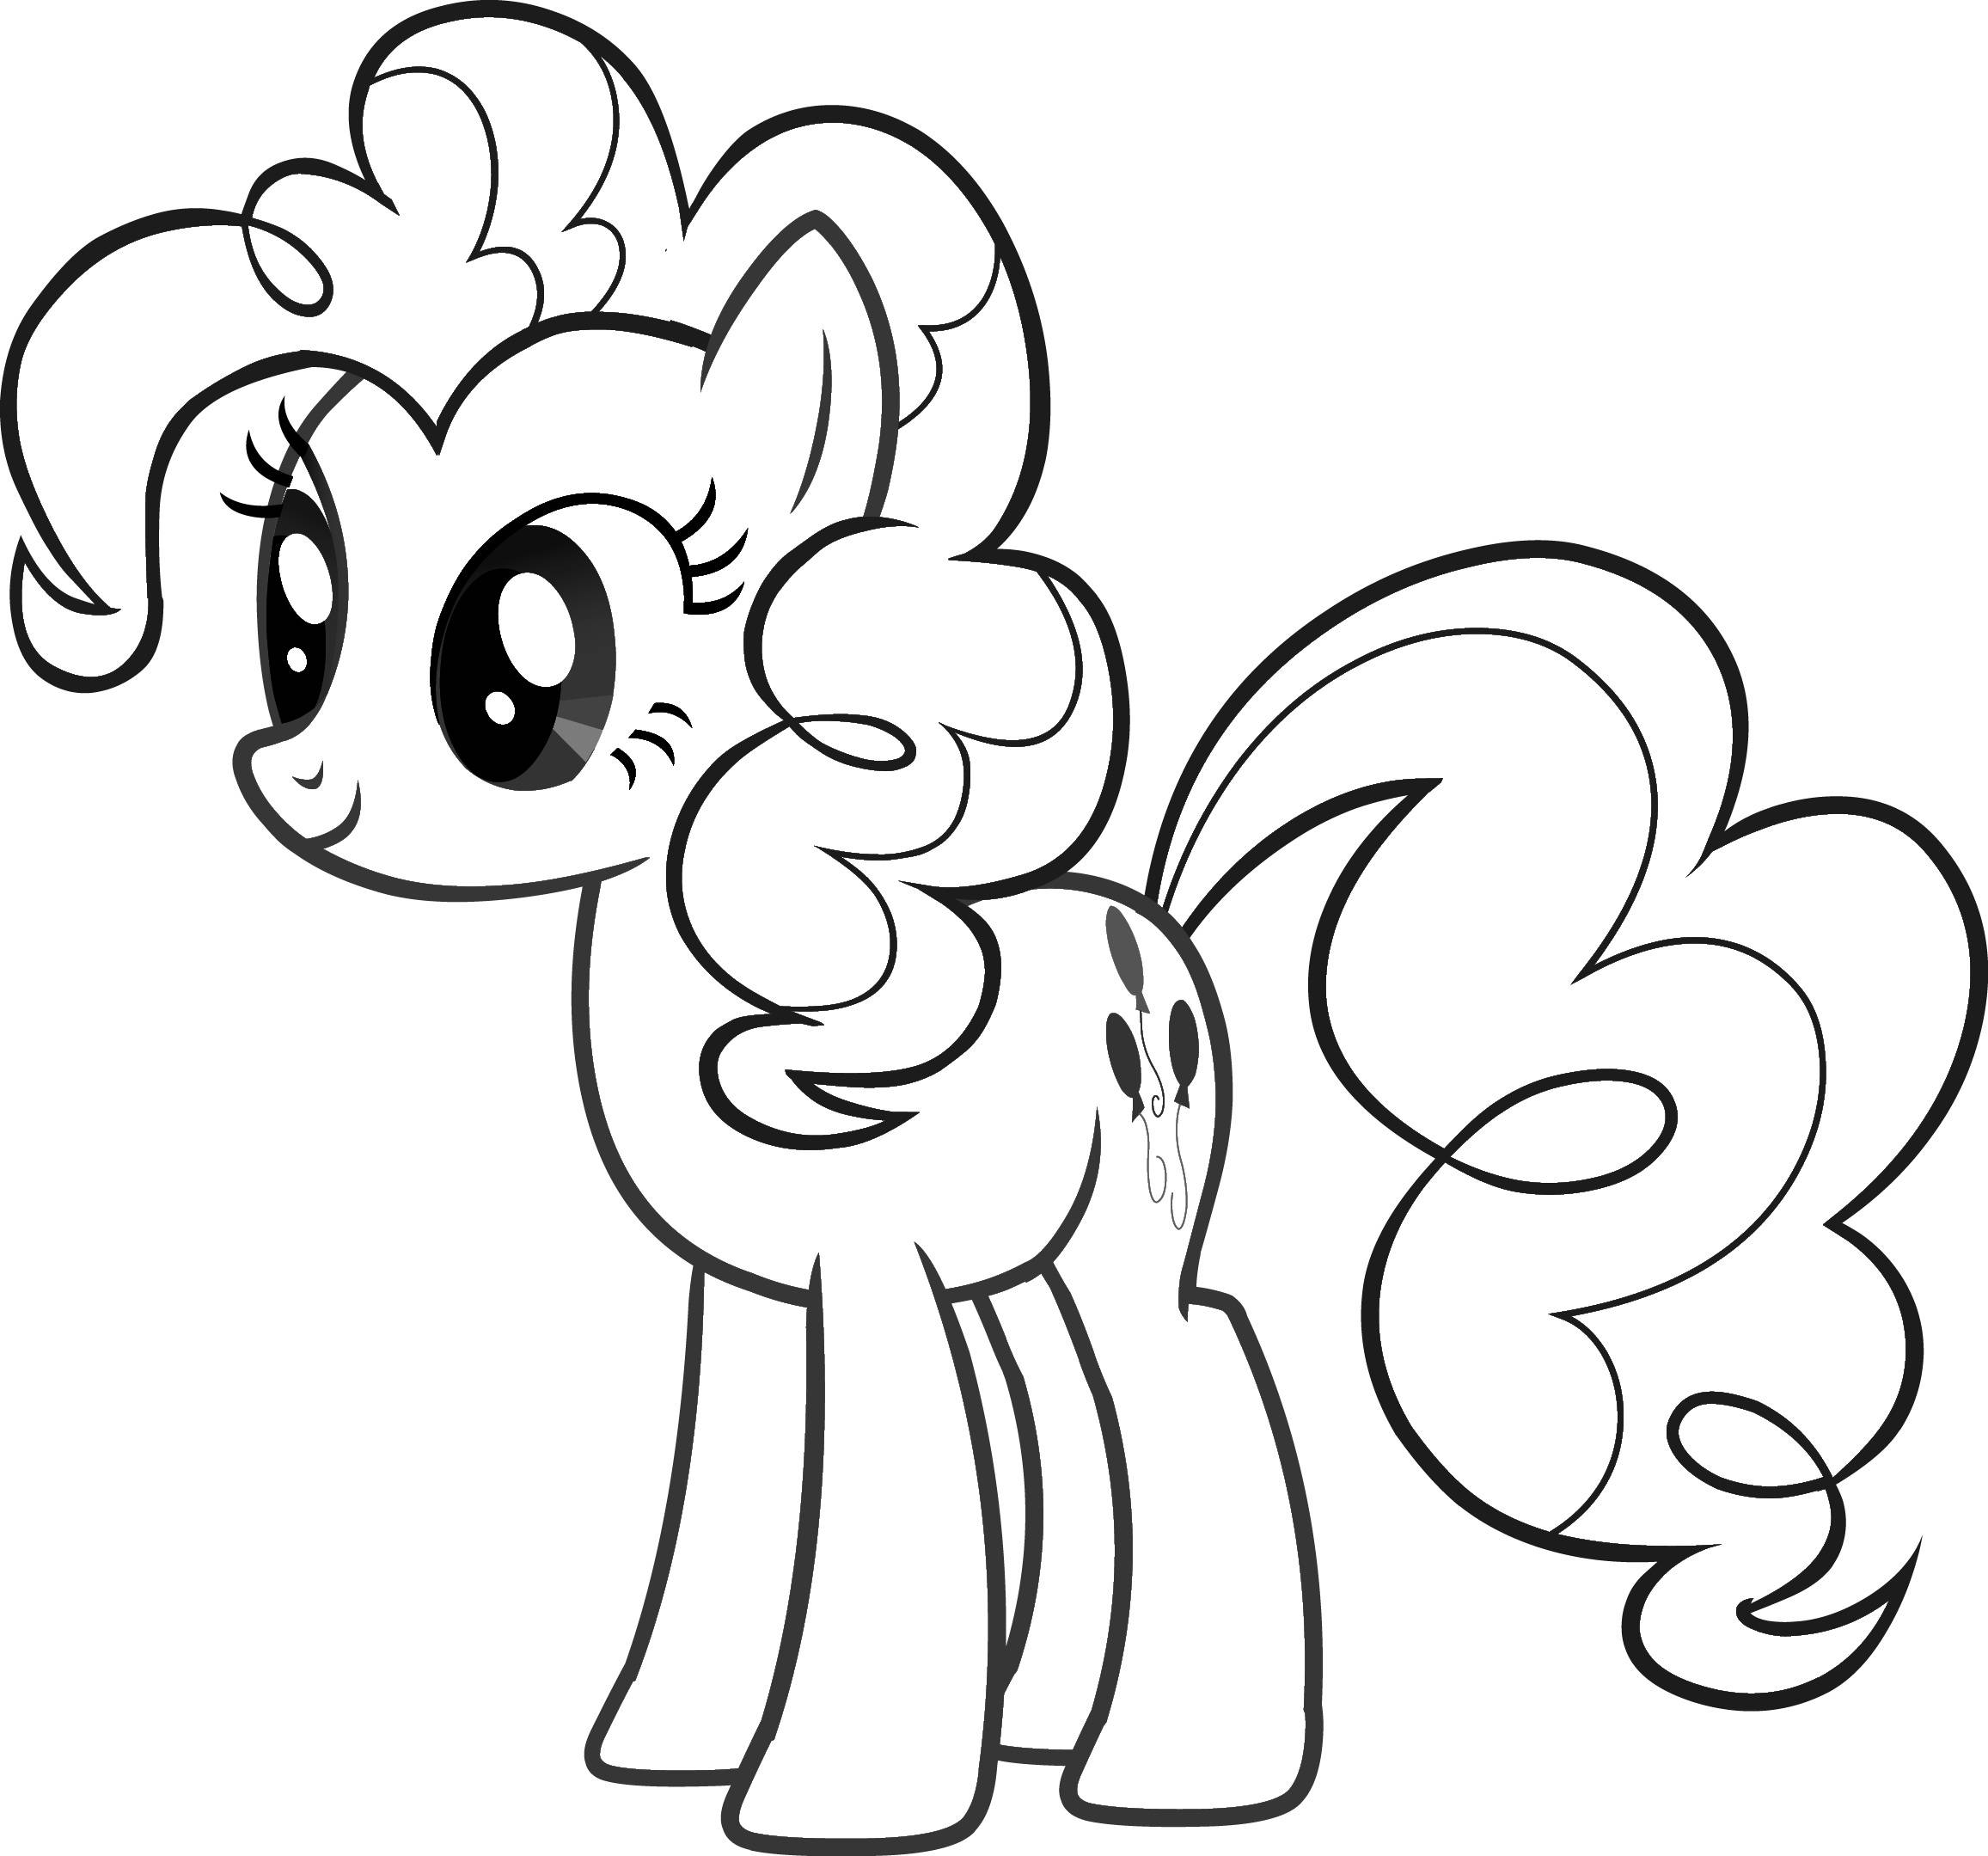 Zany image with regard to pony printable coloring pages